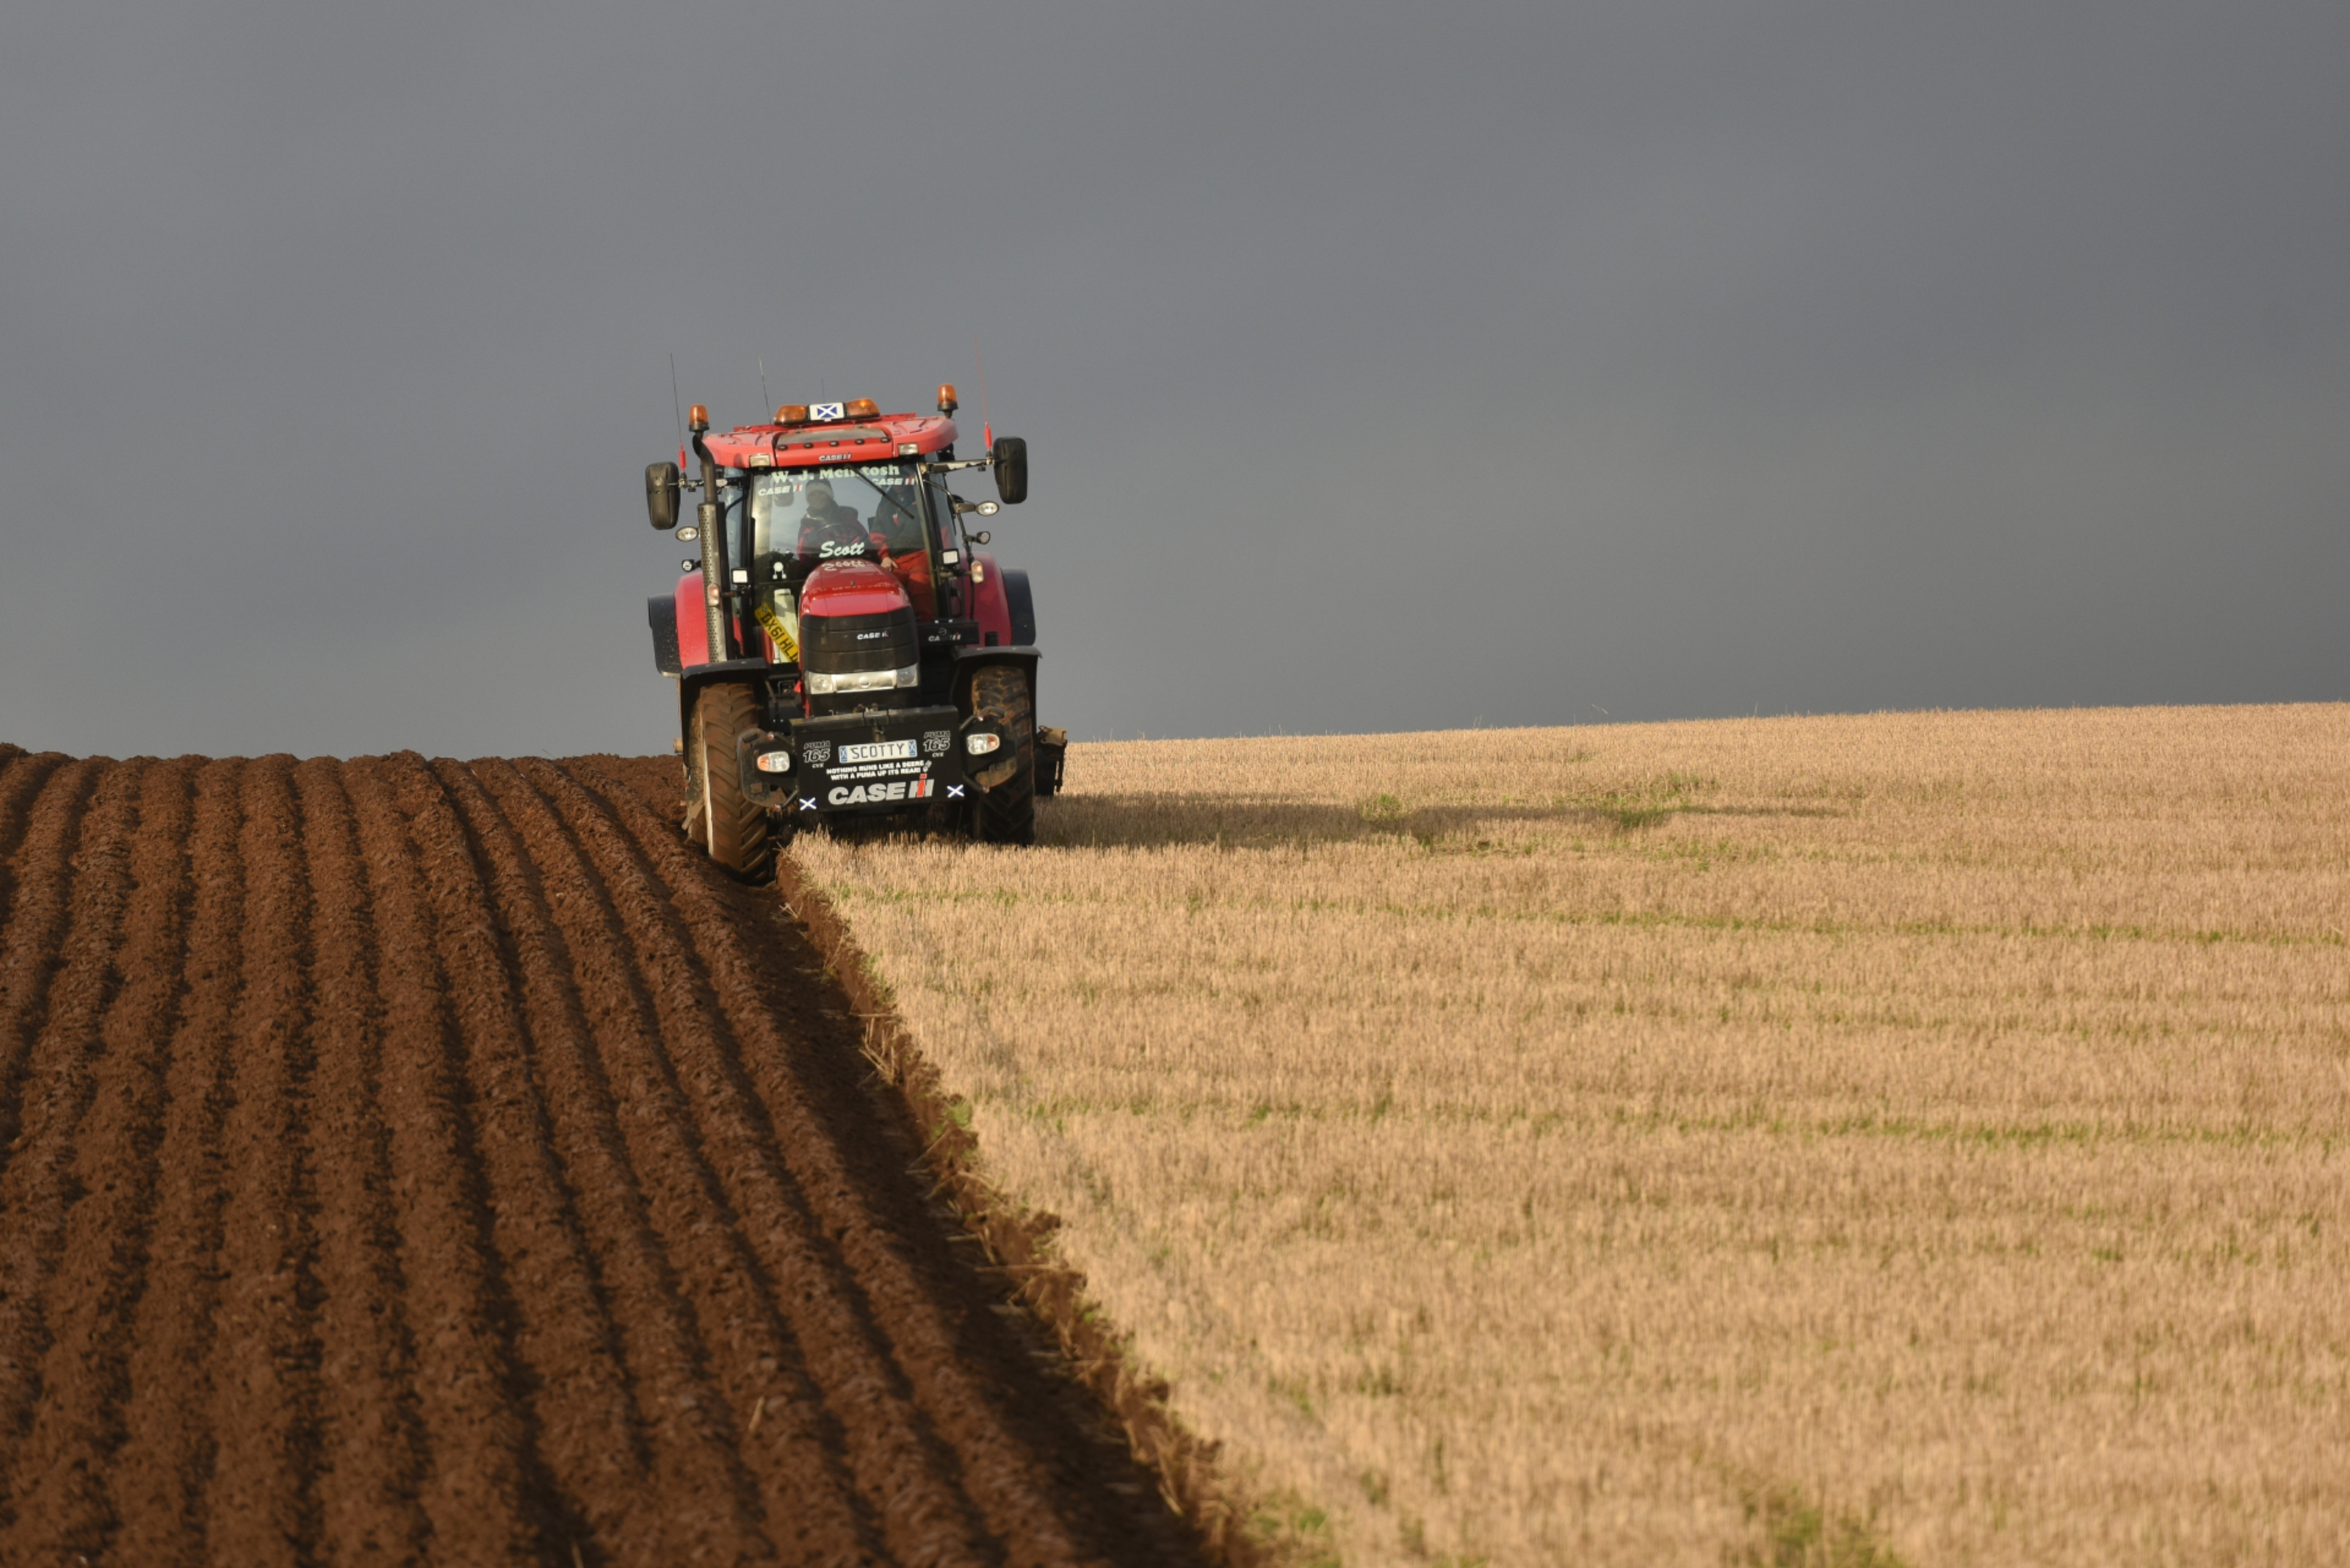 Gayle ploughing a strip of land near Coupar Angus under the watchful eye of Scott McIntosh.